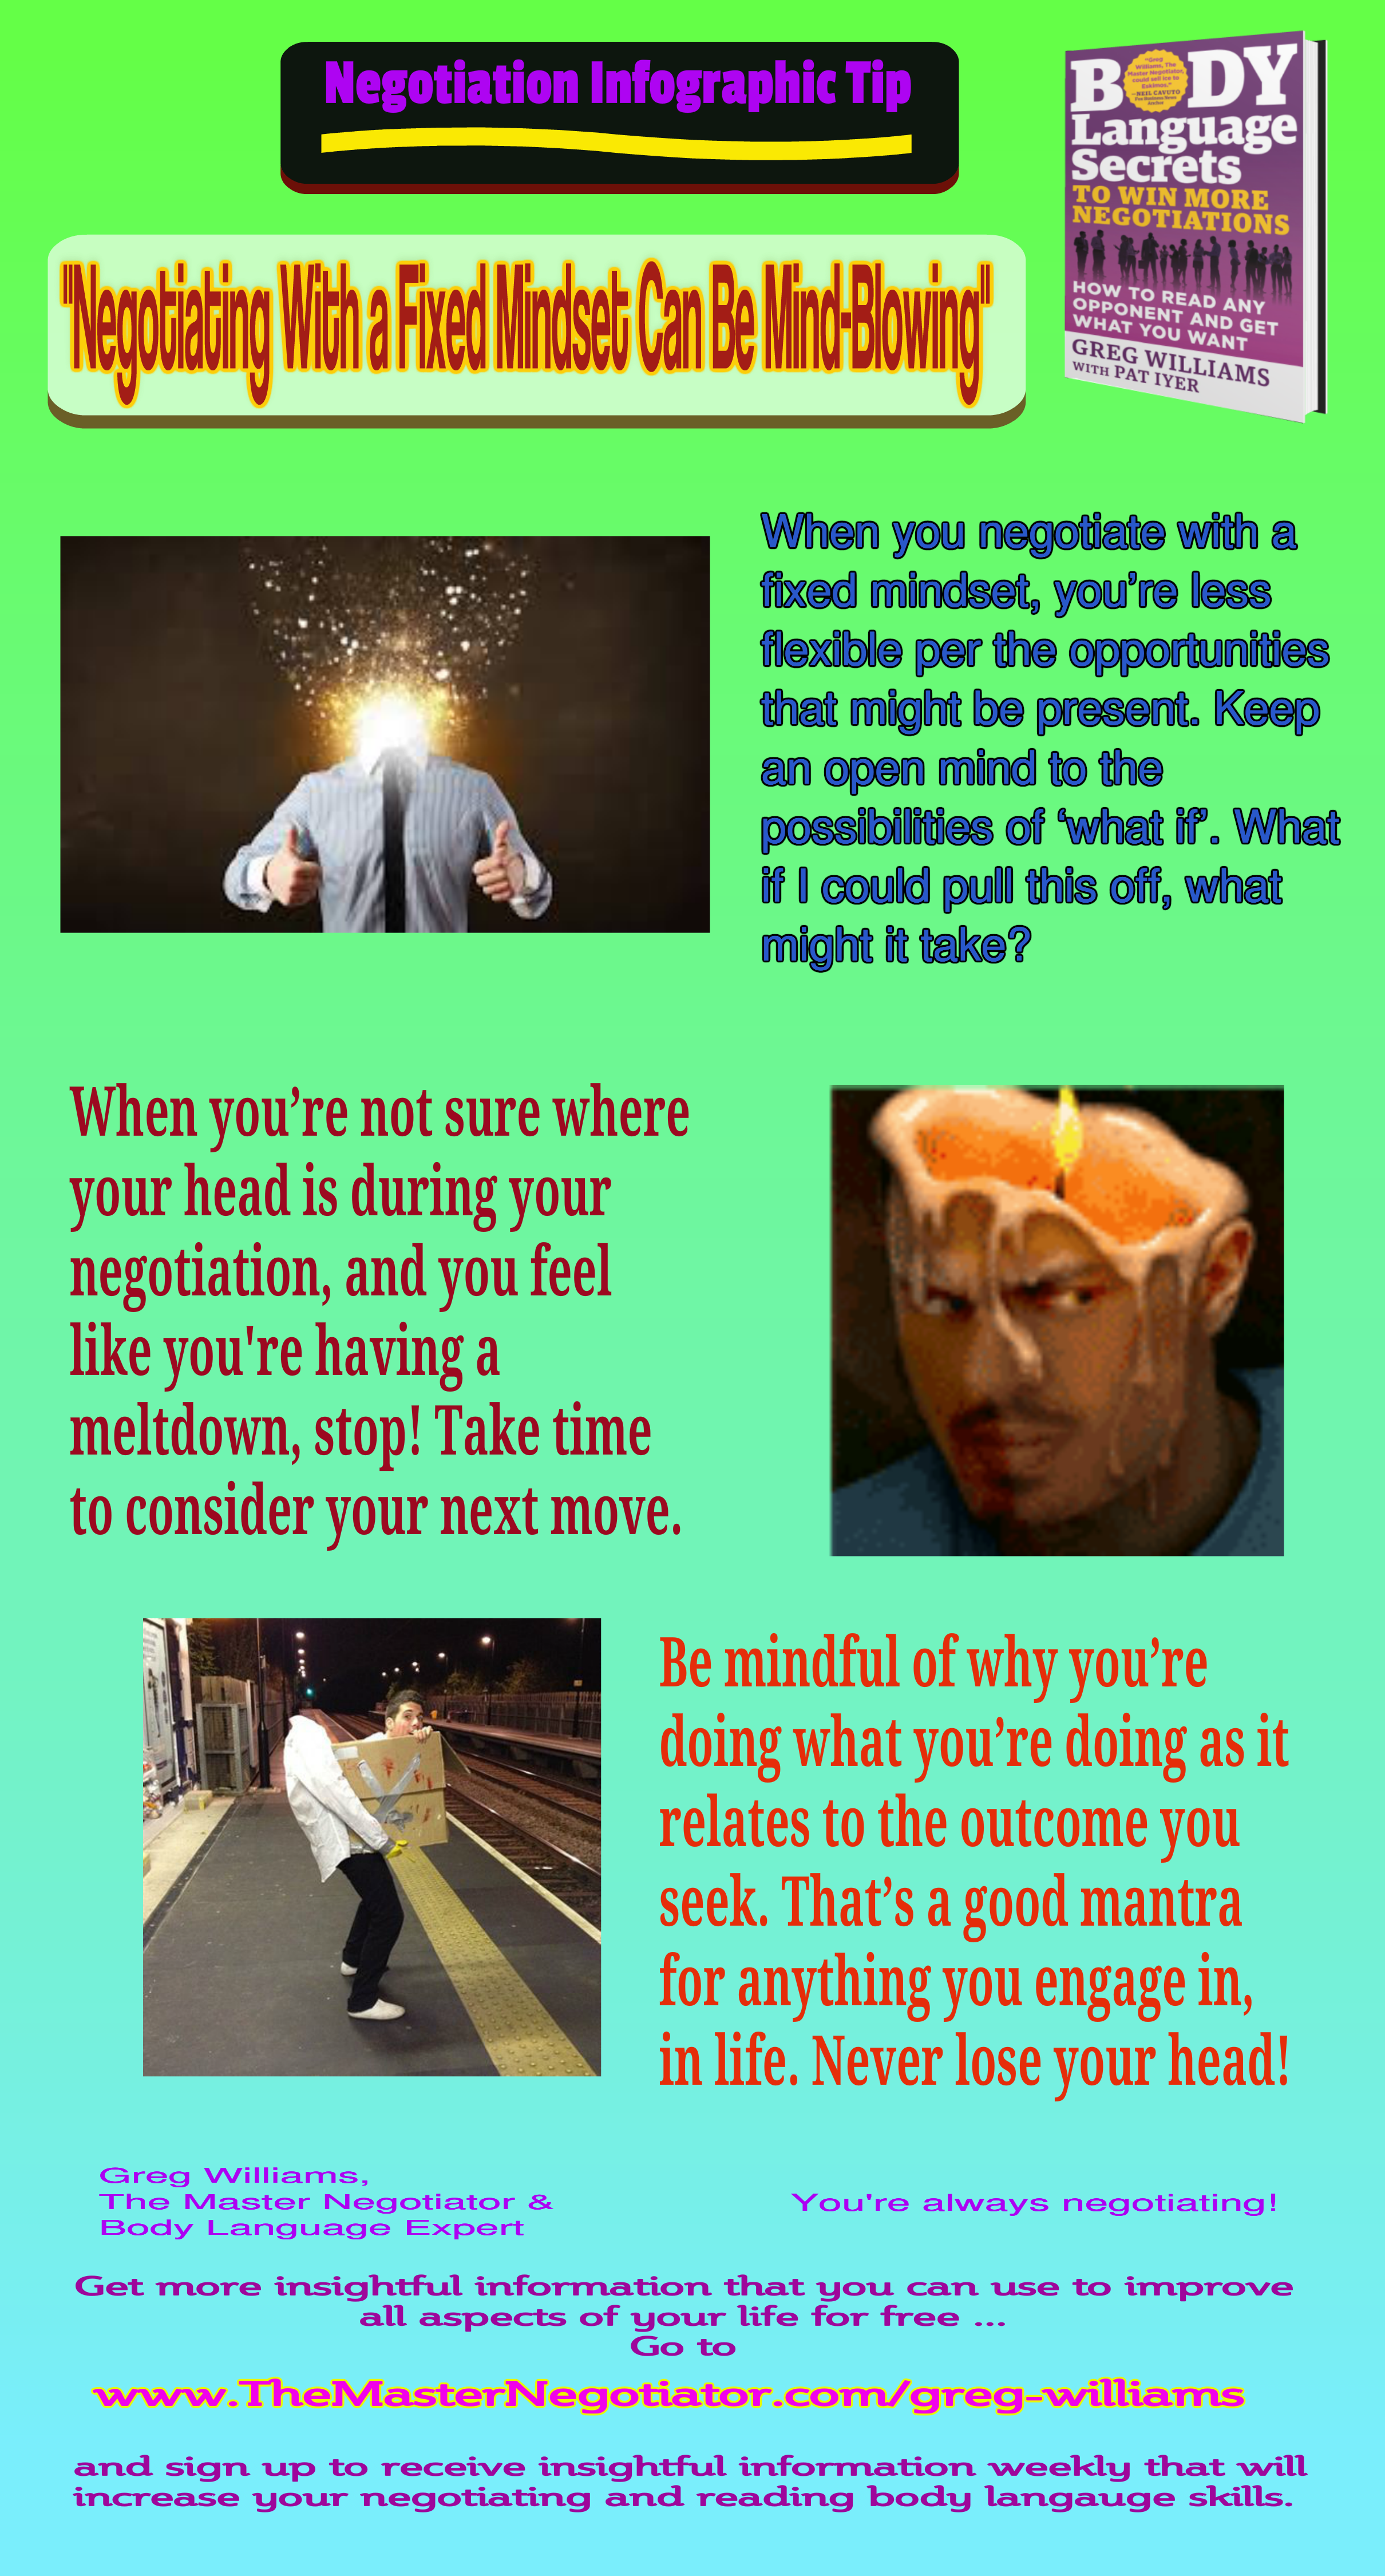 Negotiating With a Fixed Mindset Can Be MindBlowing